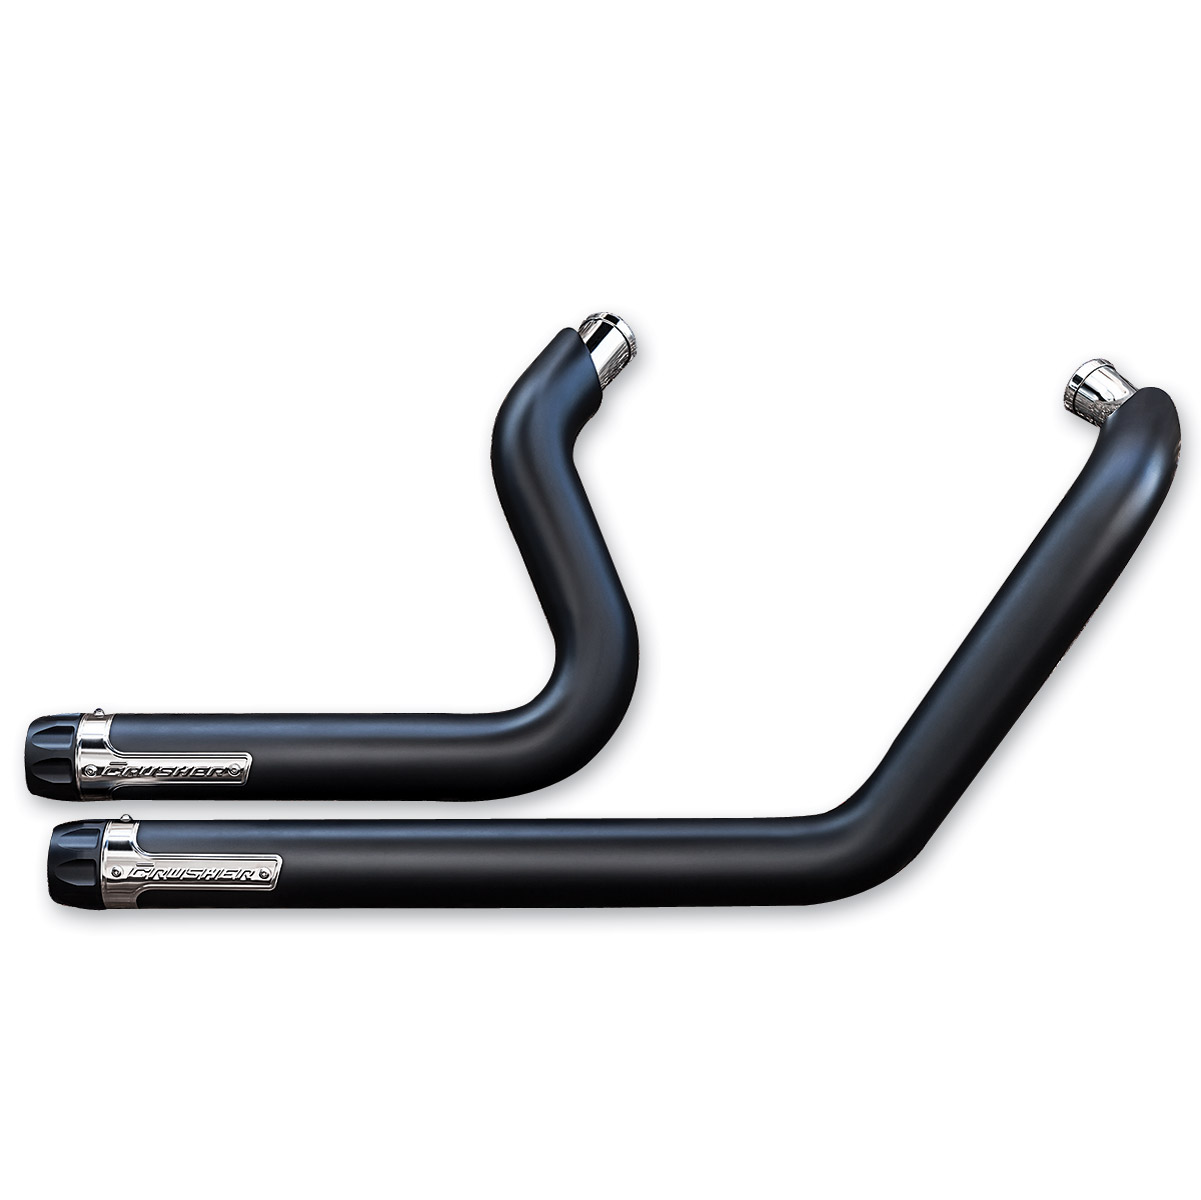 crusher maverick black 2-into-2 exhaust system | 162-886 | j&p cycles